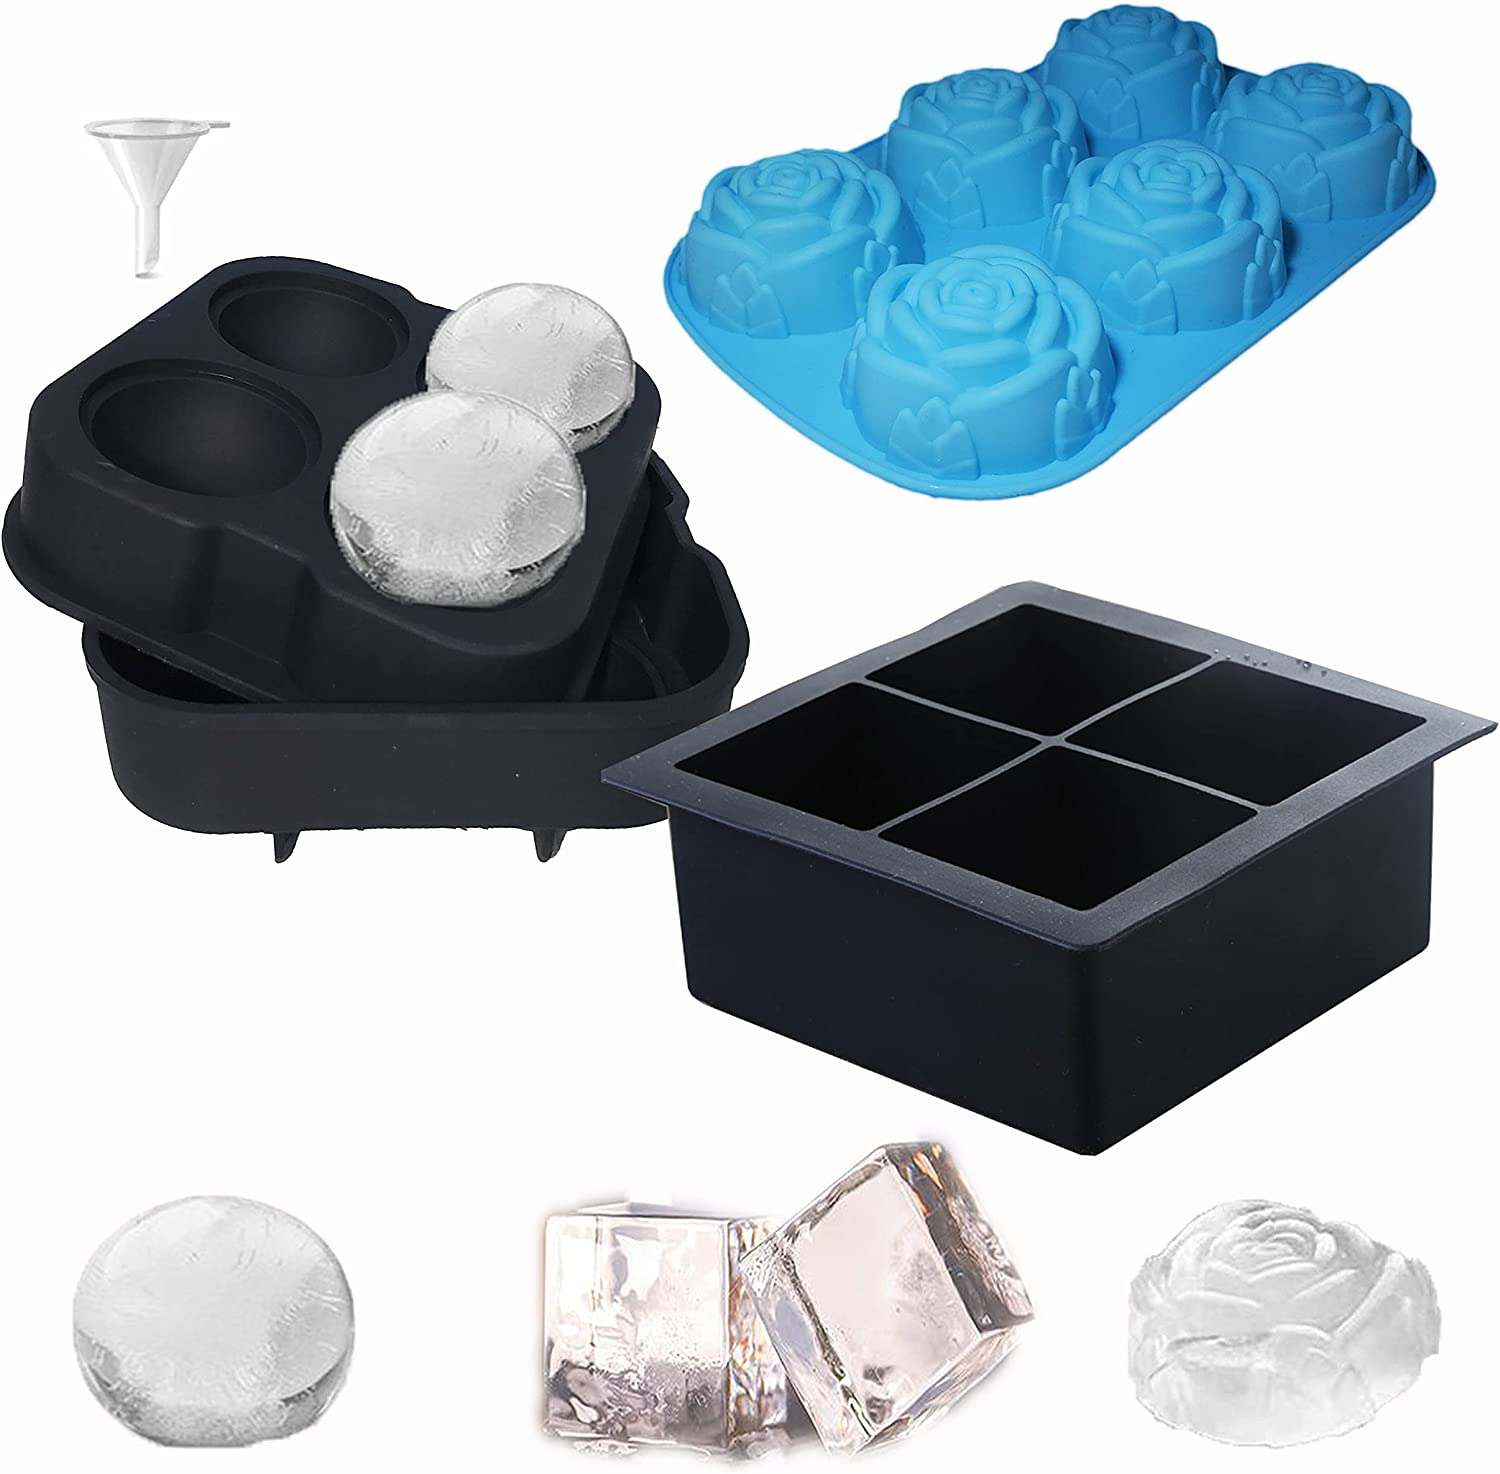 Ice Cube Tray silicone, Sphere Round Ice Cube Mold Square Rose Ice Molds with Lid & Funnel for Whiskey Old Fashioned Cocktails, Bourbon freezer (Set of 3)